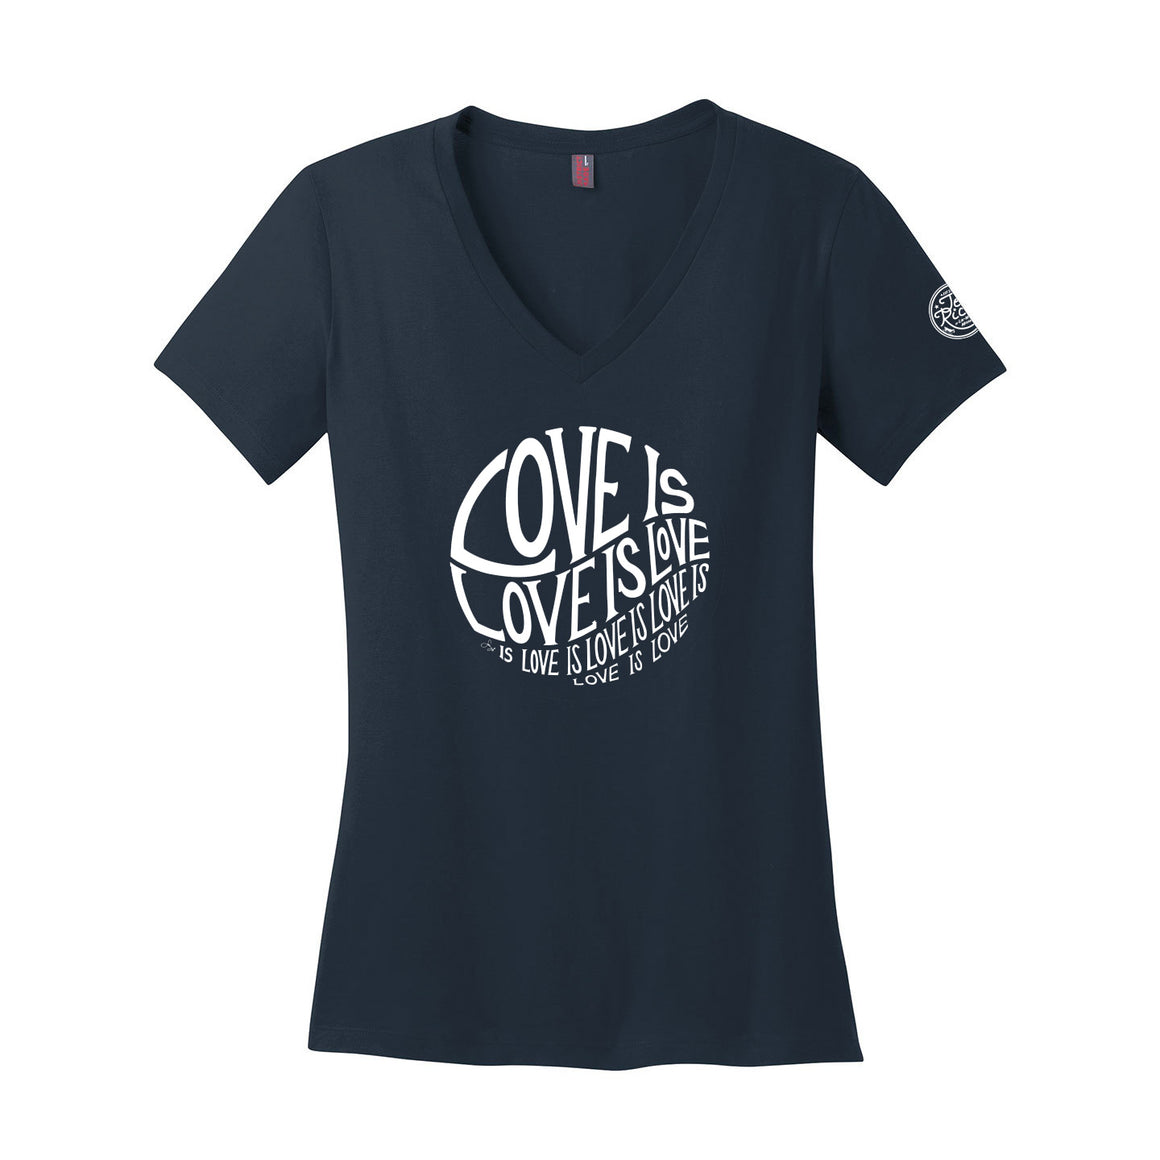 Circle of Love is Love - Ladies V-Neck - Navy